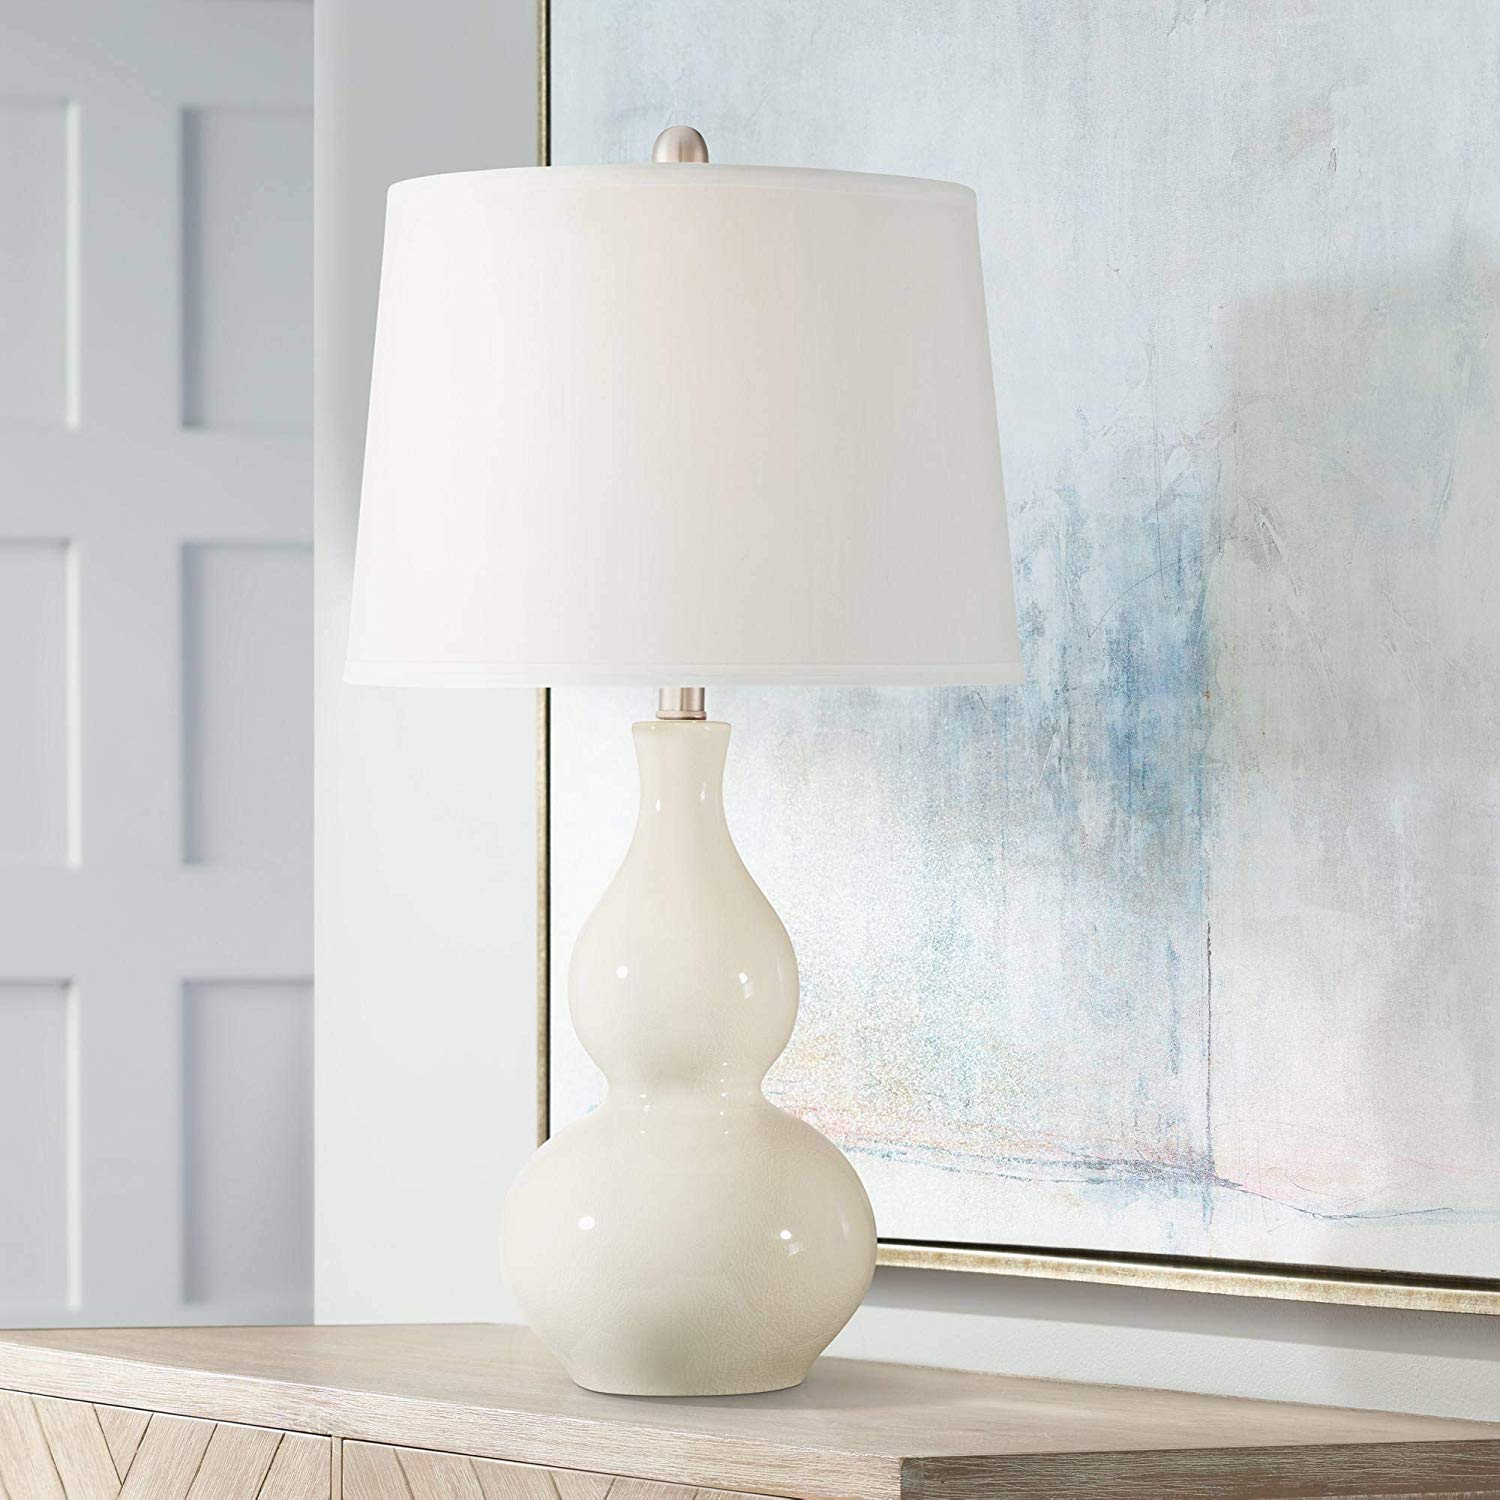 Fergie Modern Table Lamp